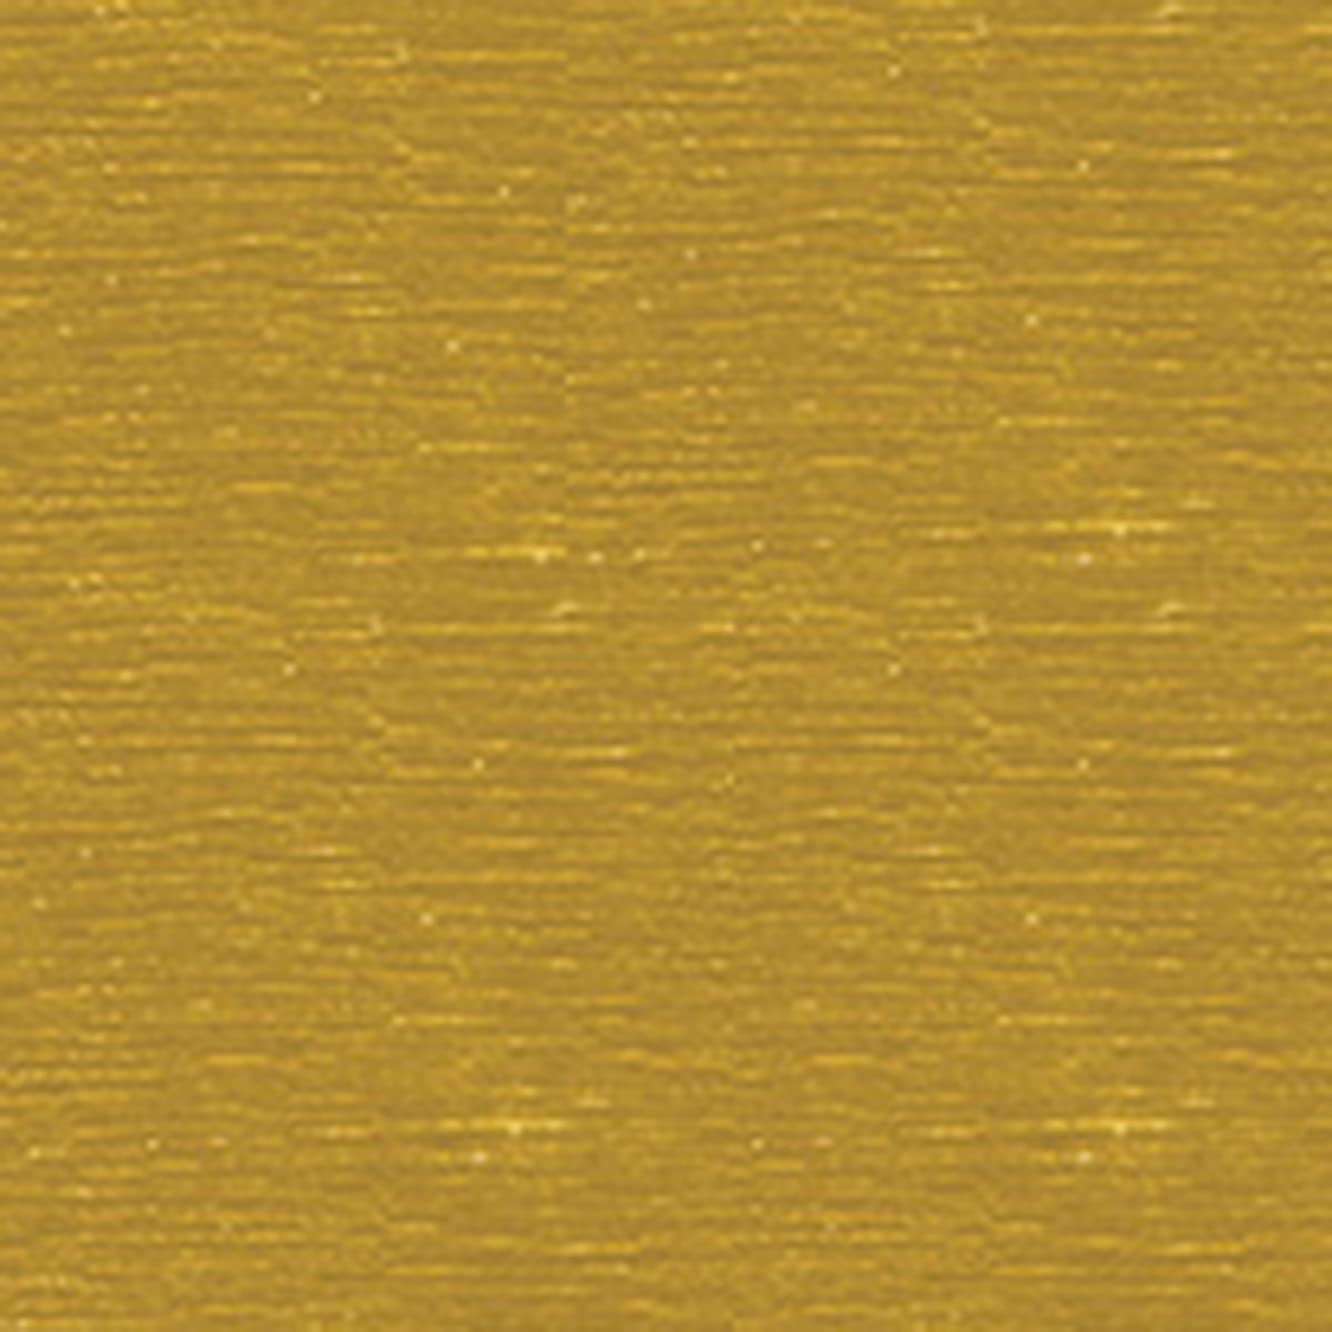 Best Creation PTP002 Textured Foil Cardstock 12 inches X12 inches -Gold, None